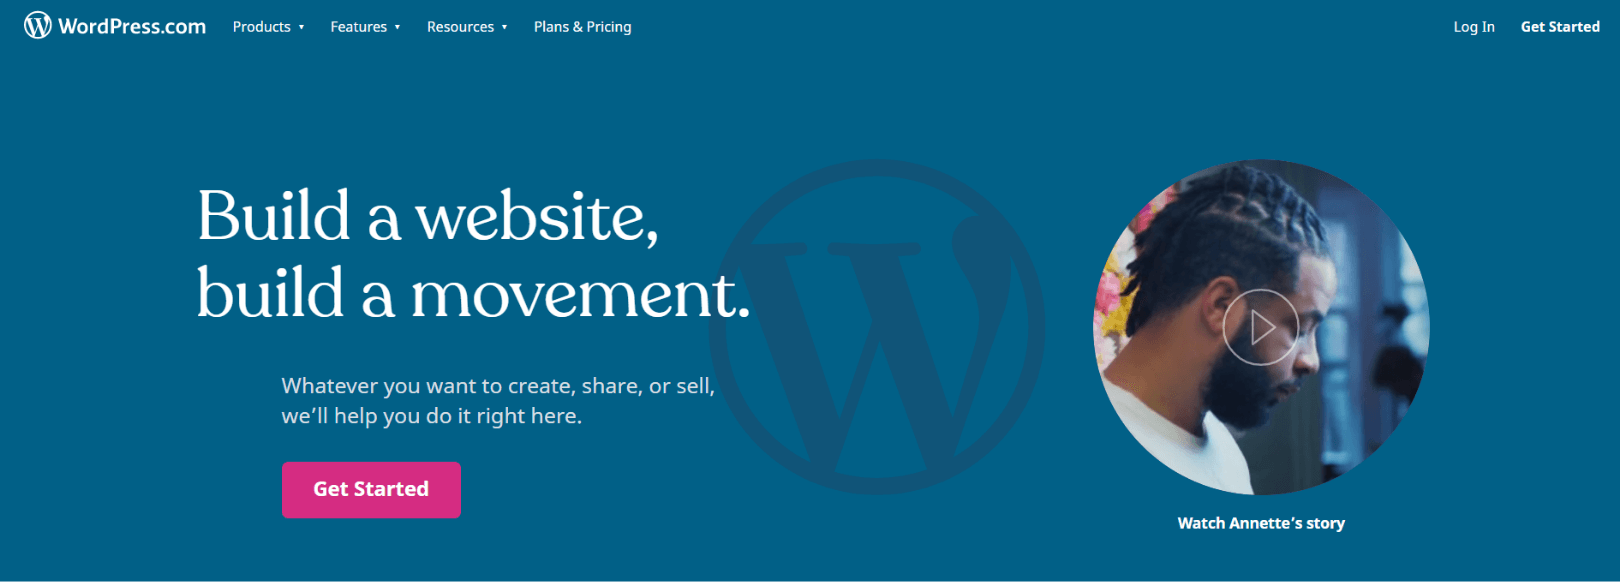 WordPress com Build a website build a movement